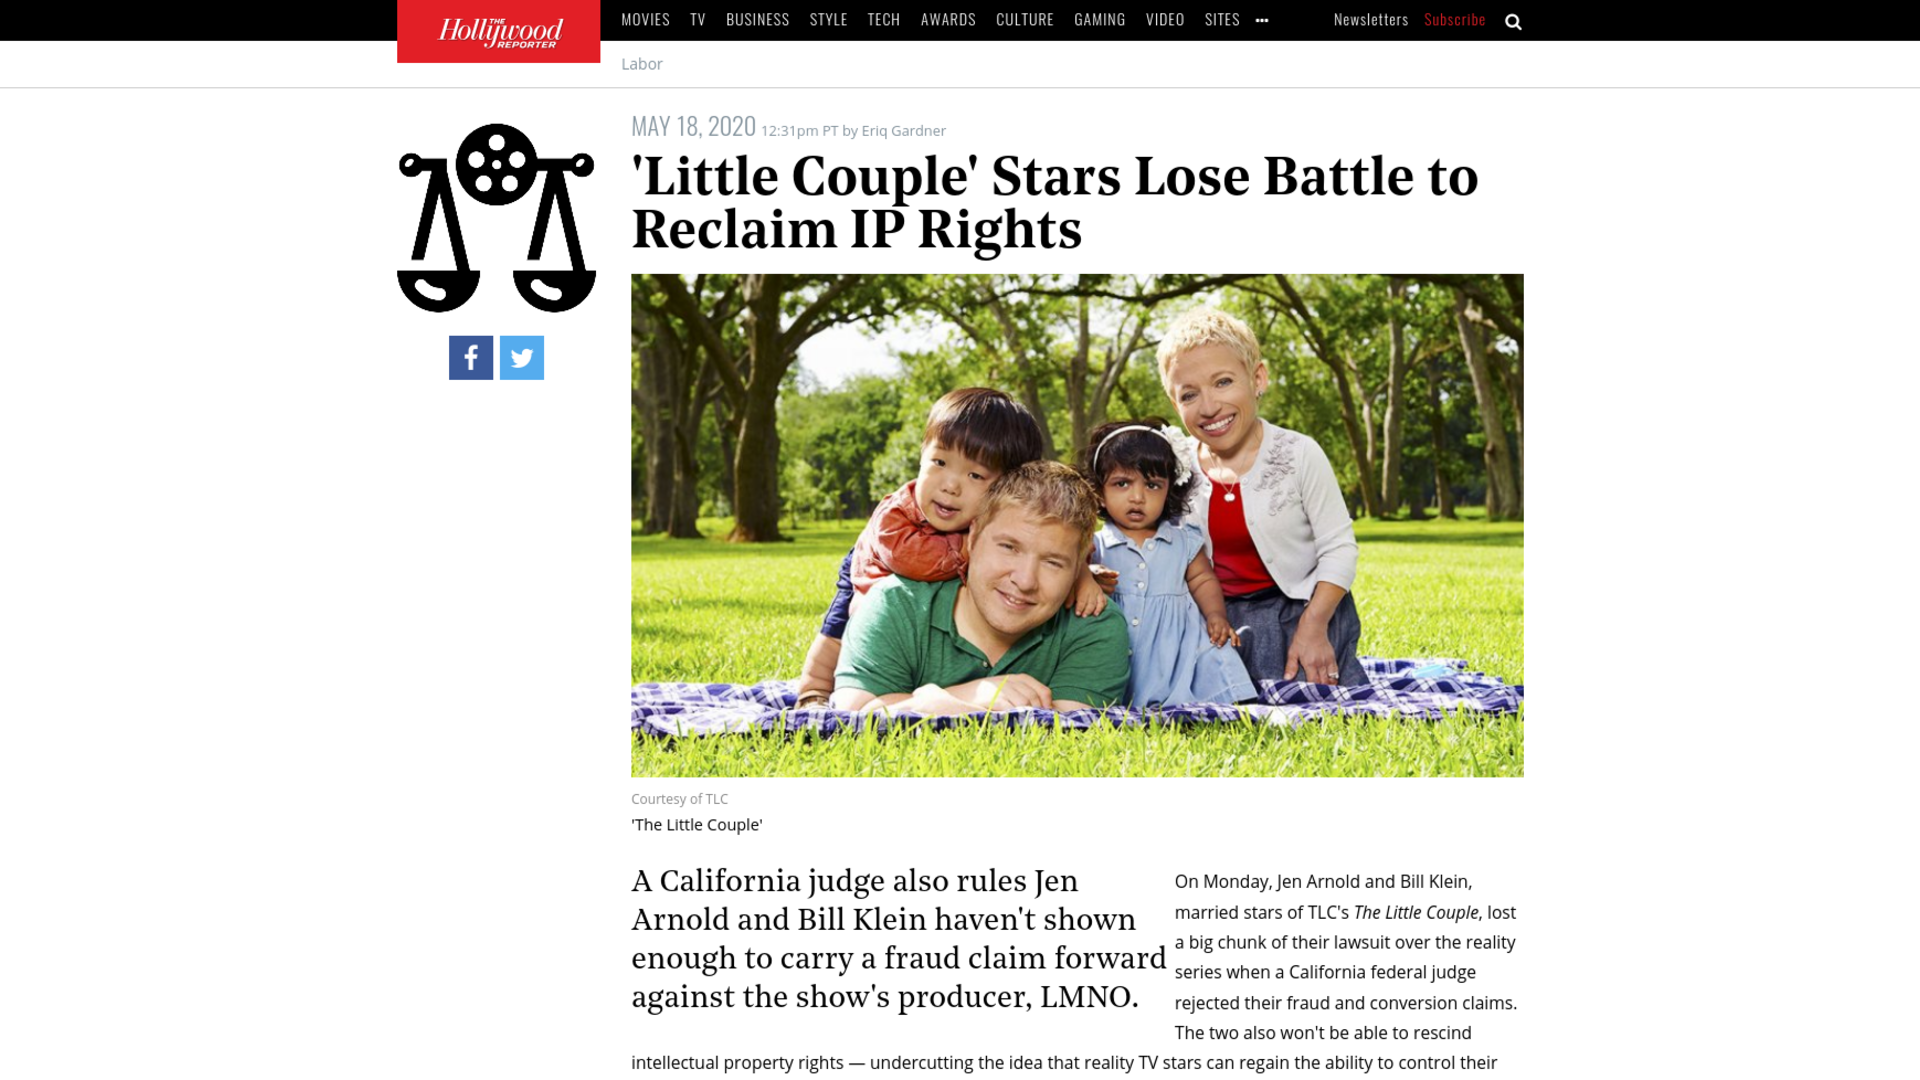 Fairness Rocks News 'Little Couple' Stars Lose Battle to Reclaim IP Rights